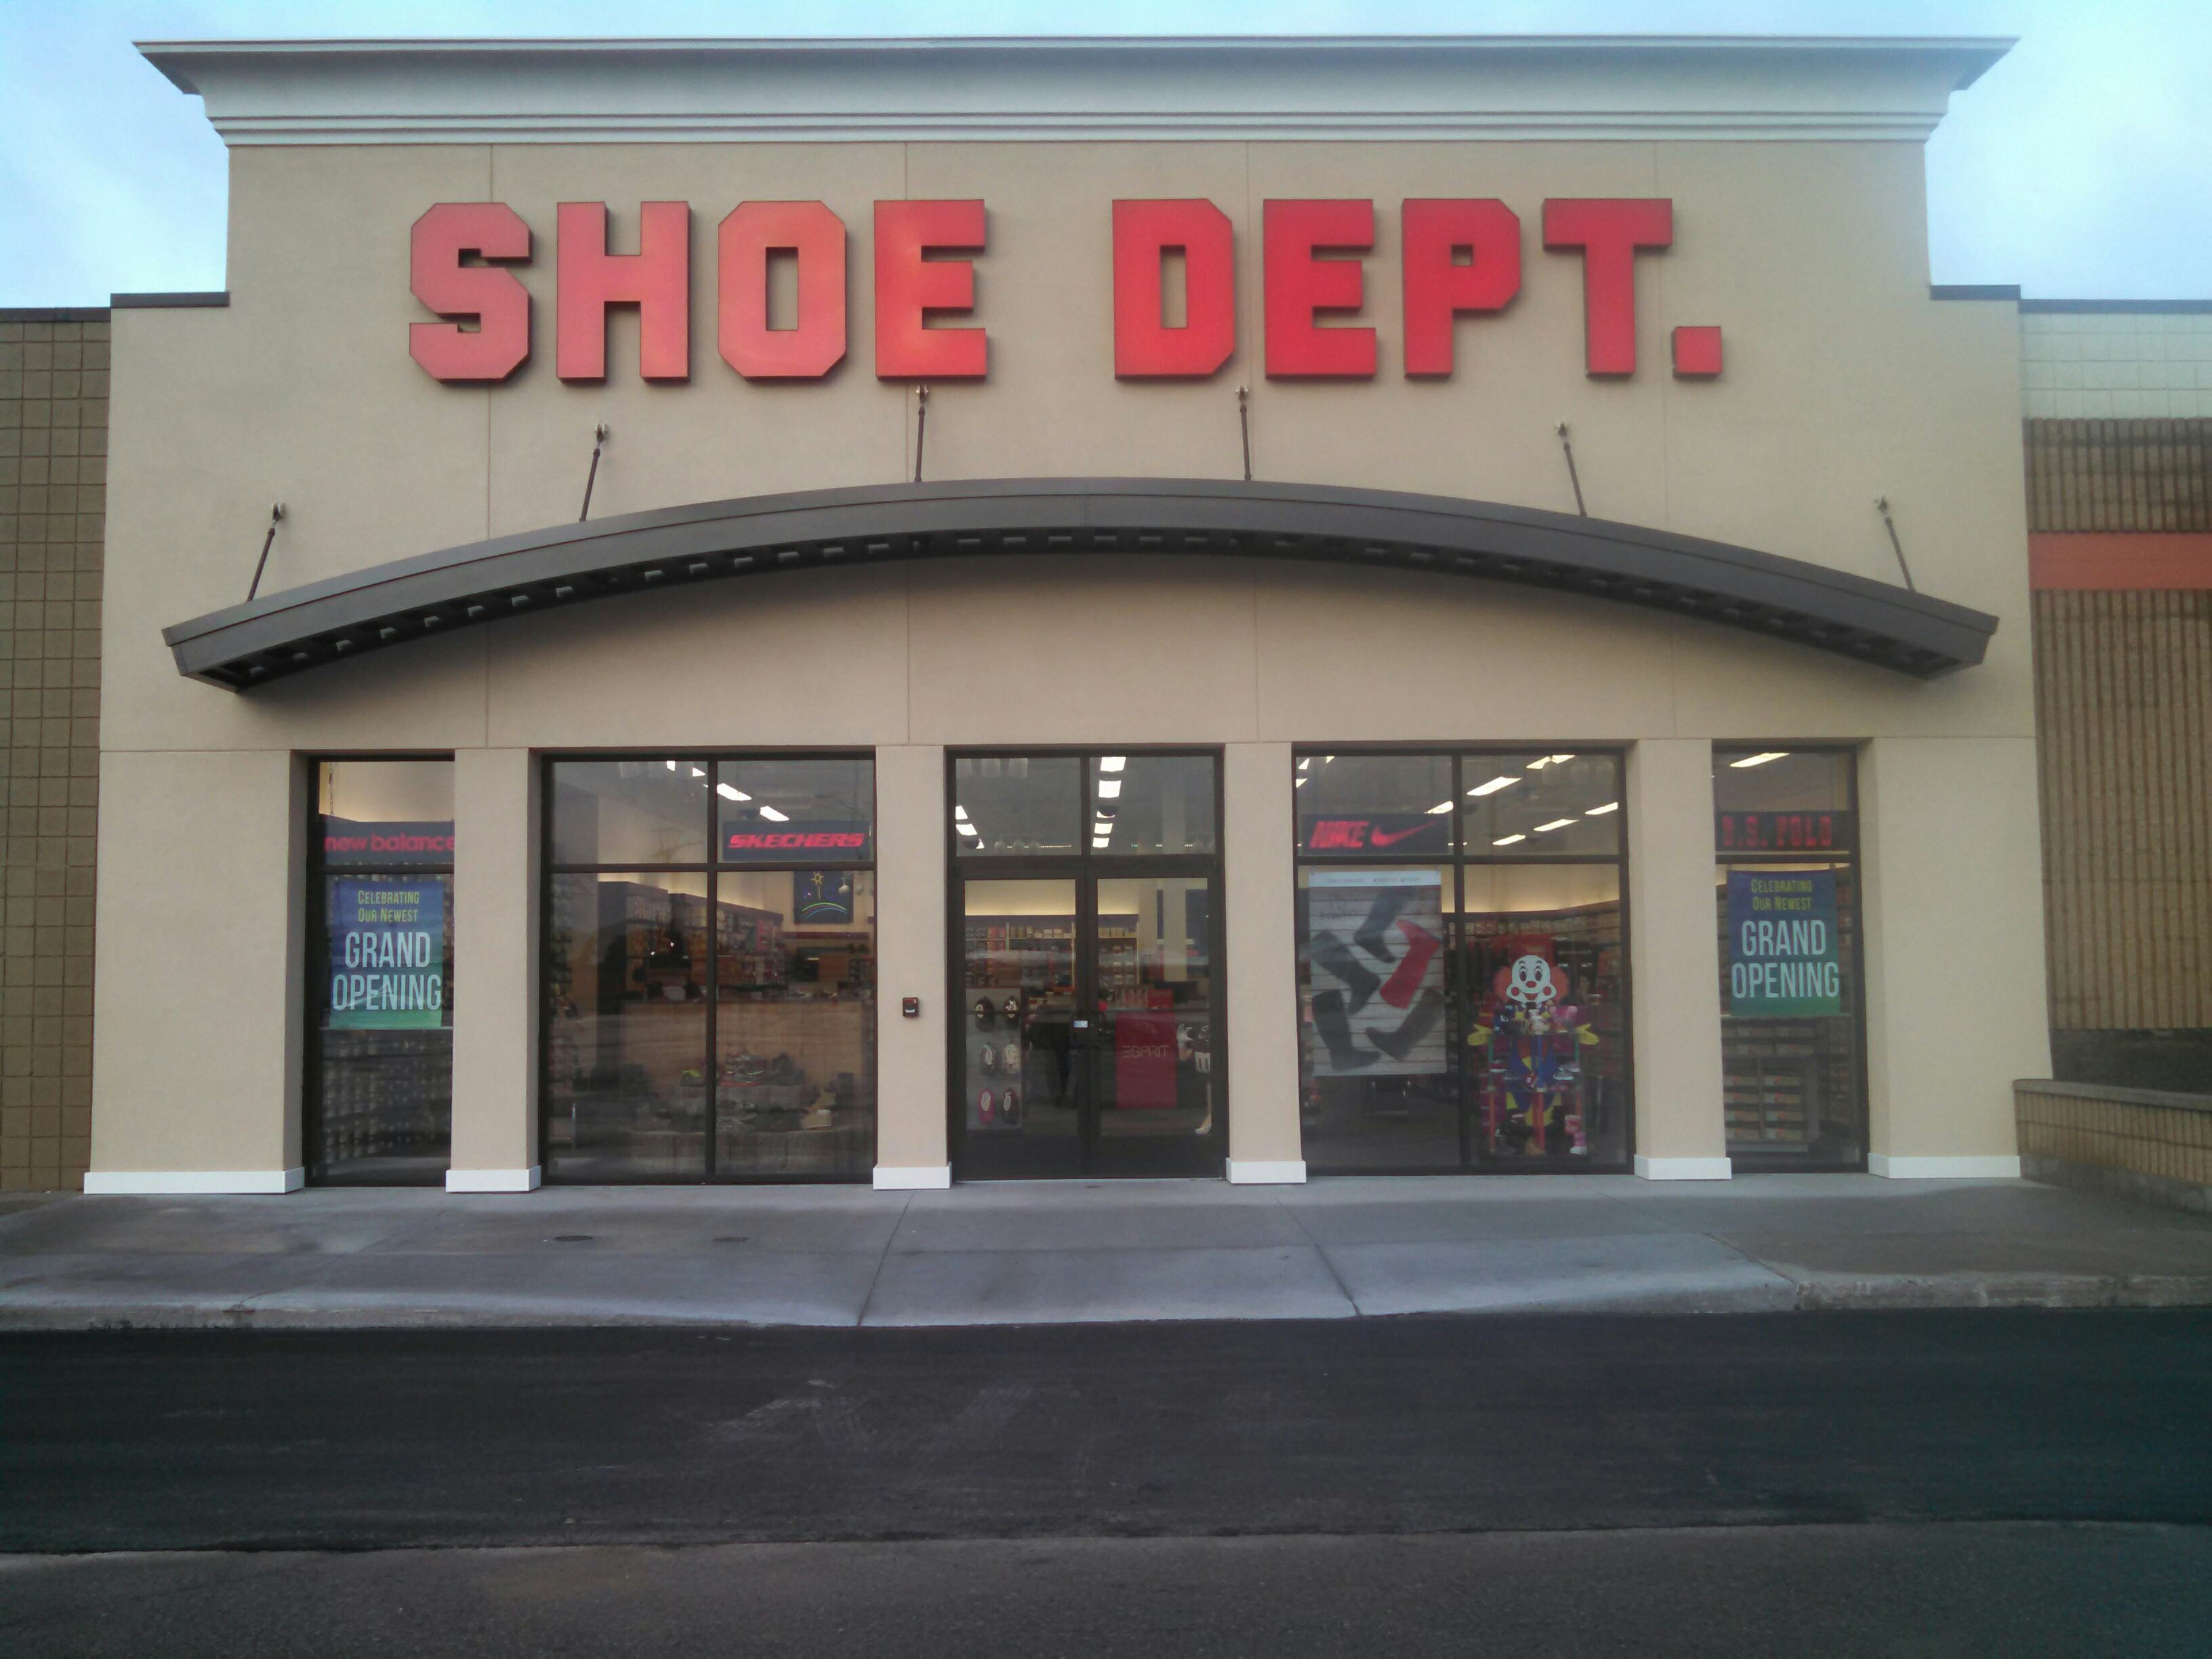 The dept shoe pictures